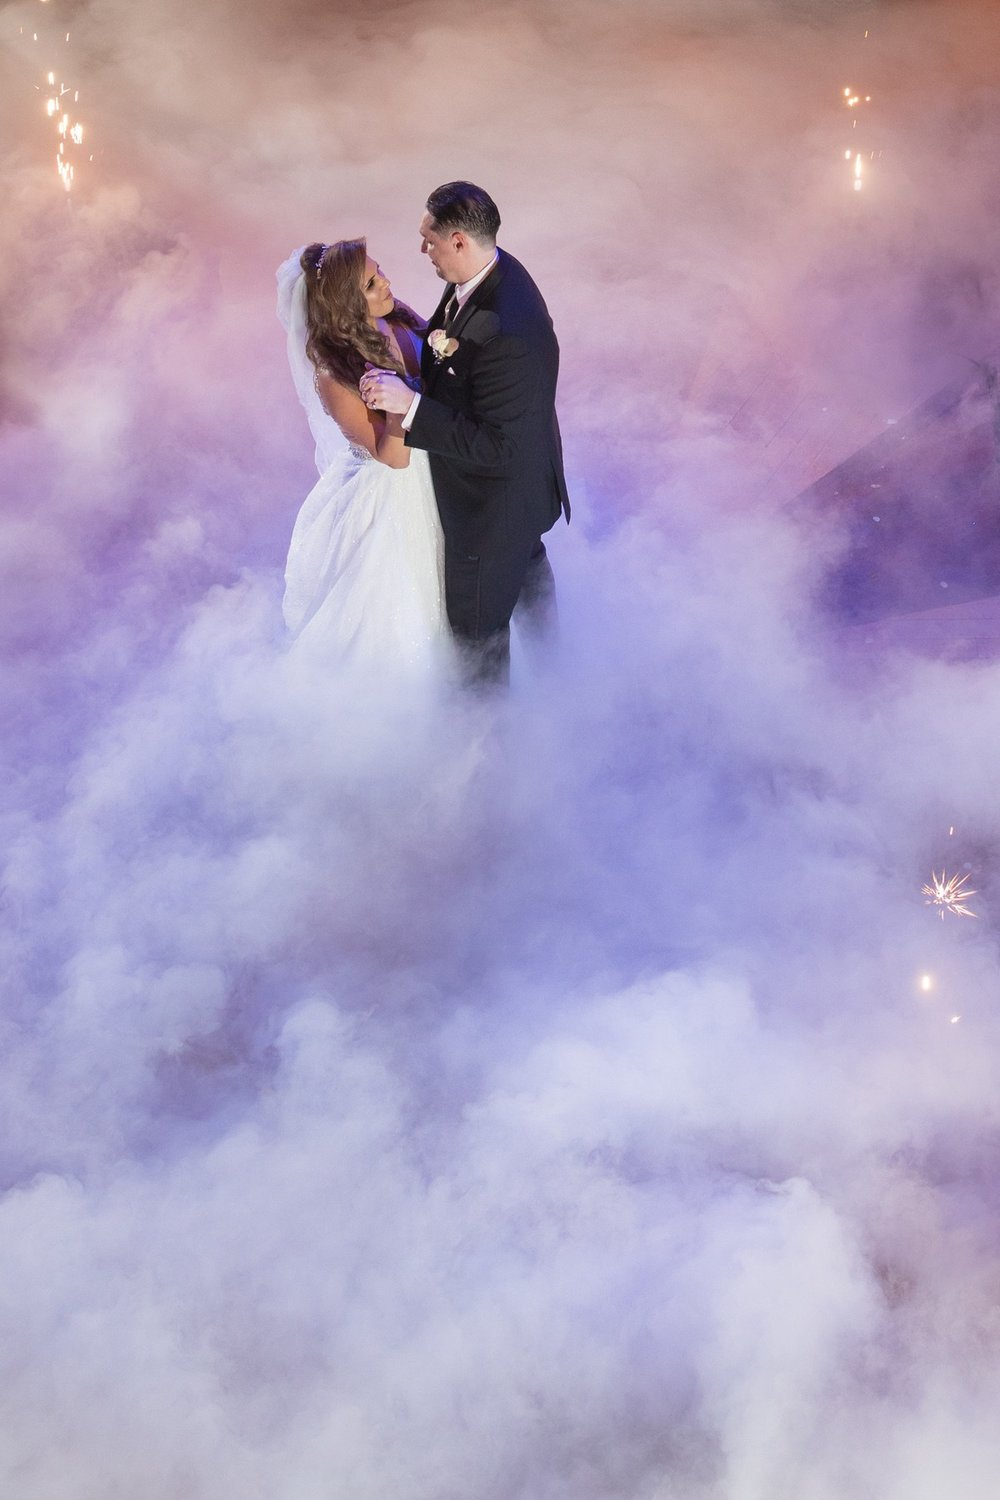 Le Cape Weddings - Laila and Anthony - Chicago Wedding - Additionals-47-2.jpg